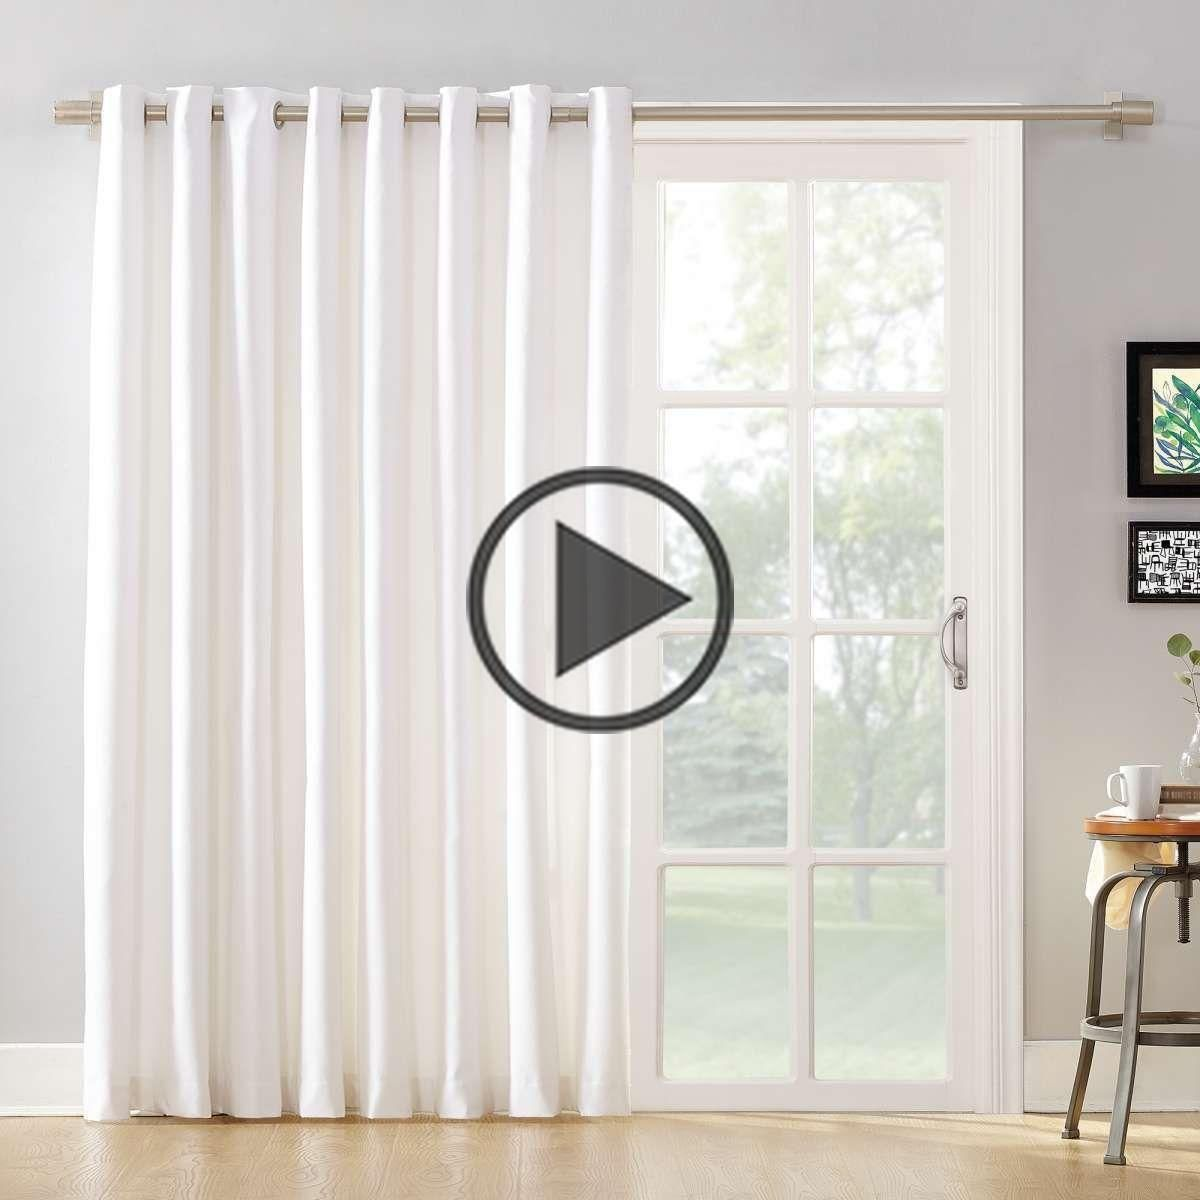 16+ Wonderful Balcony Curtains Walmart Collection #balconycurtains 16+ Wonderful Balcony Curtains